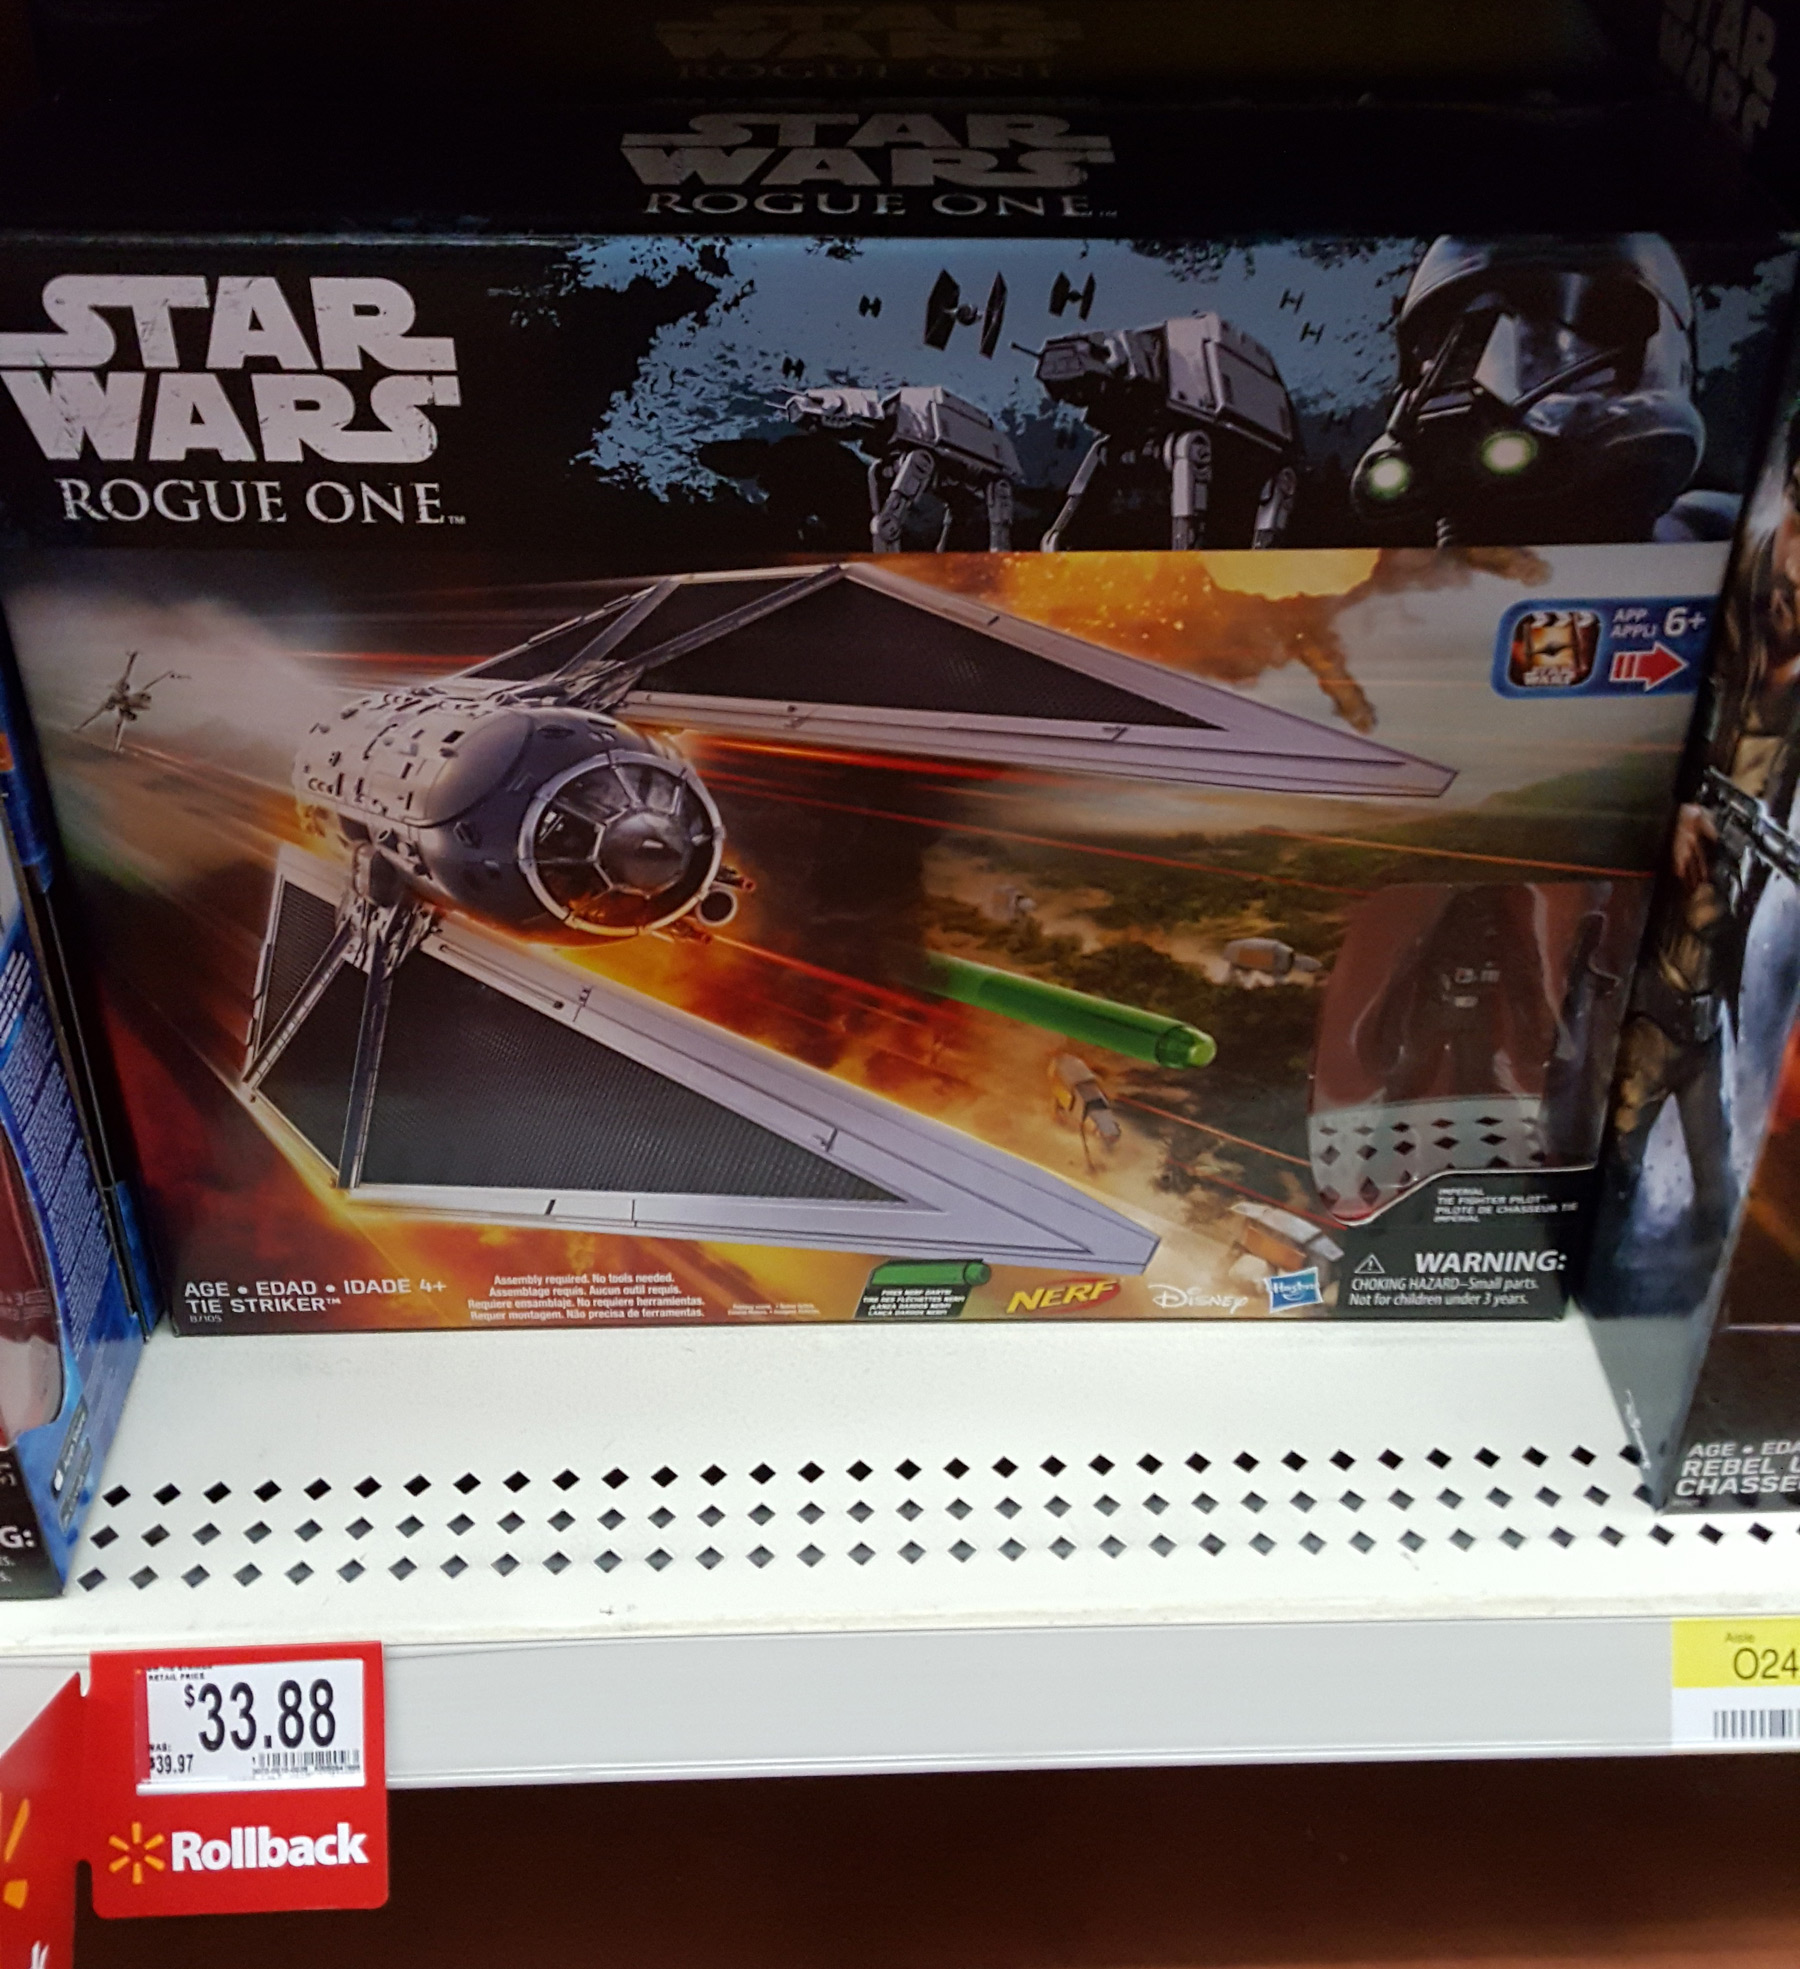 jedi temple archives news imperial tie striker on walmart rollback imperial tie striker on walmart rollback